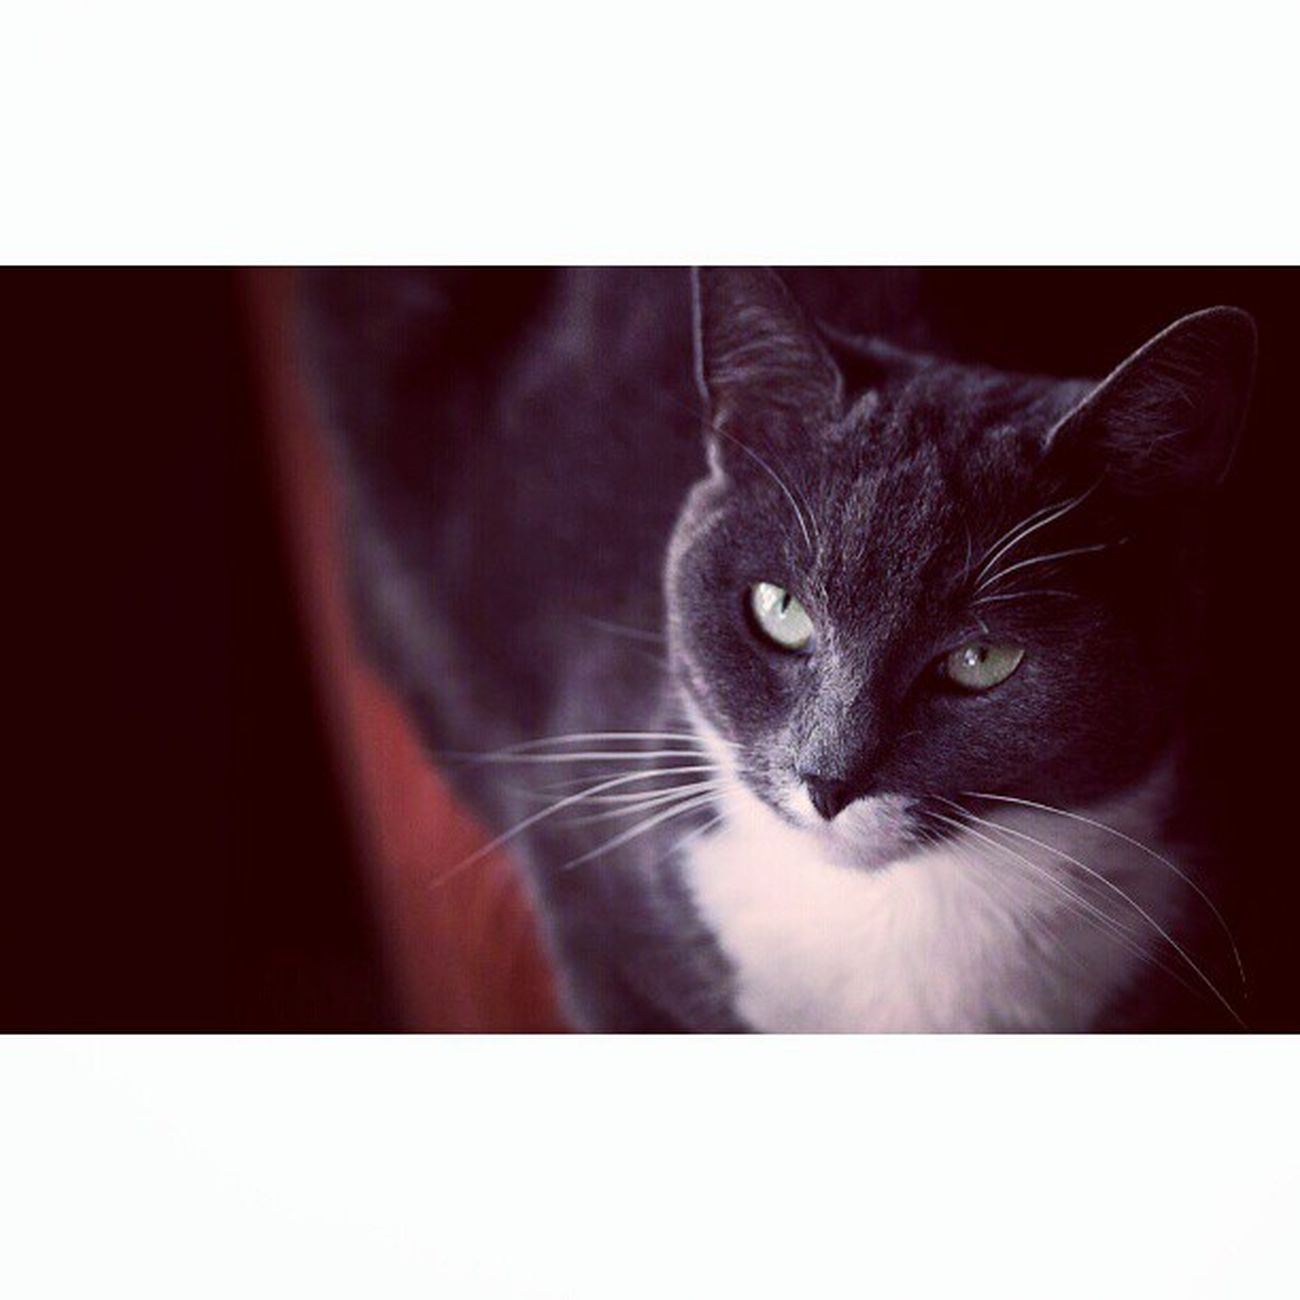 My lovely cat! Lucasphotography Cute Cat Instamood picoftheday instadaily instacats